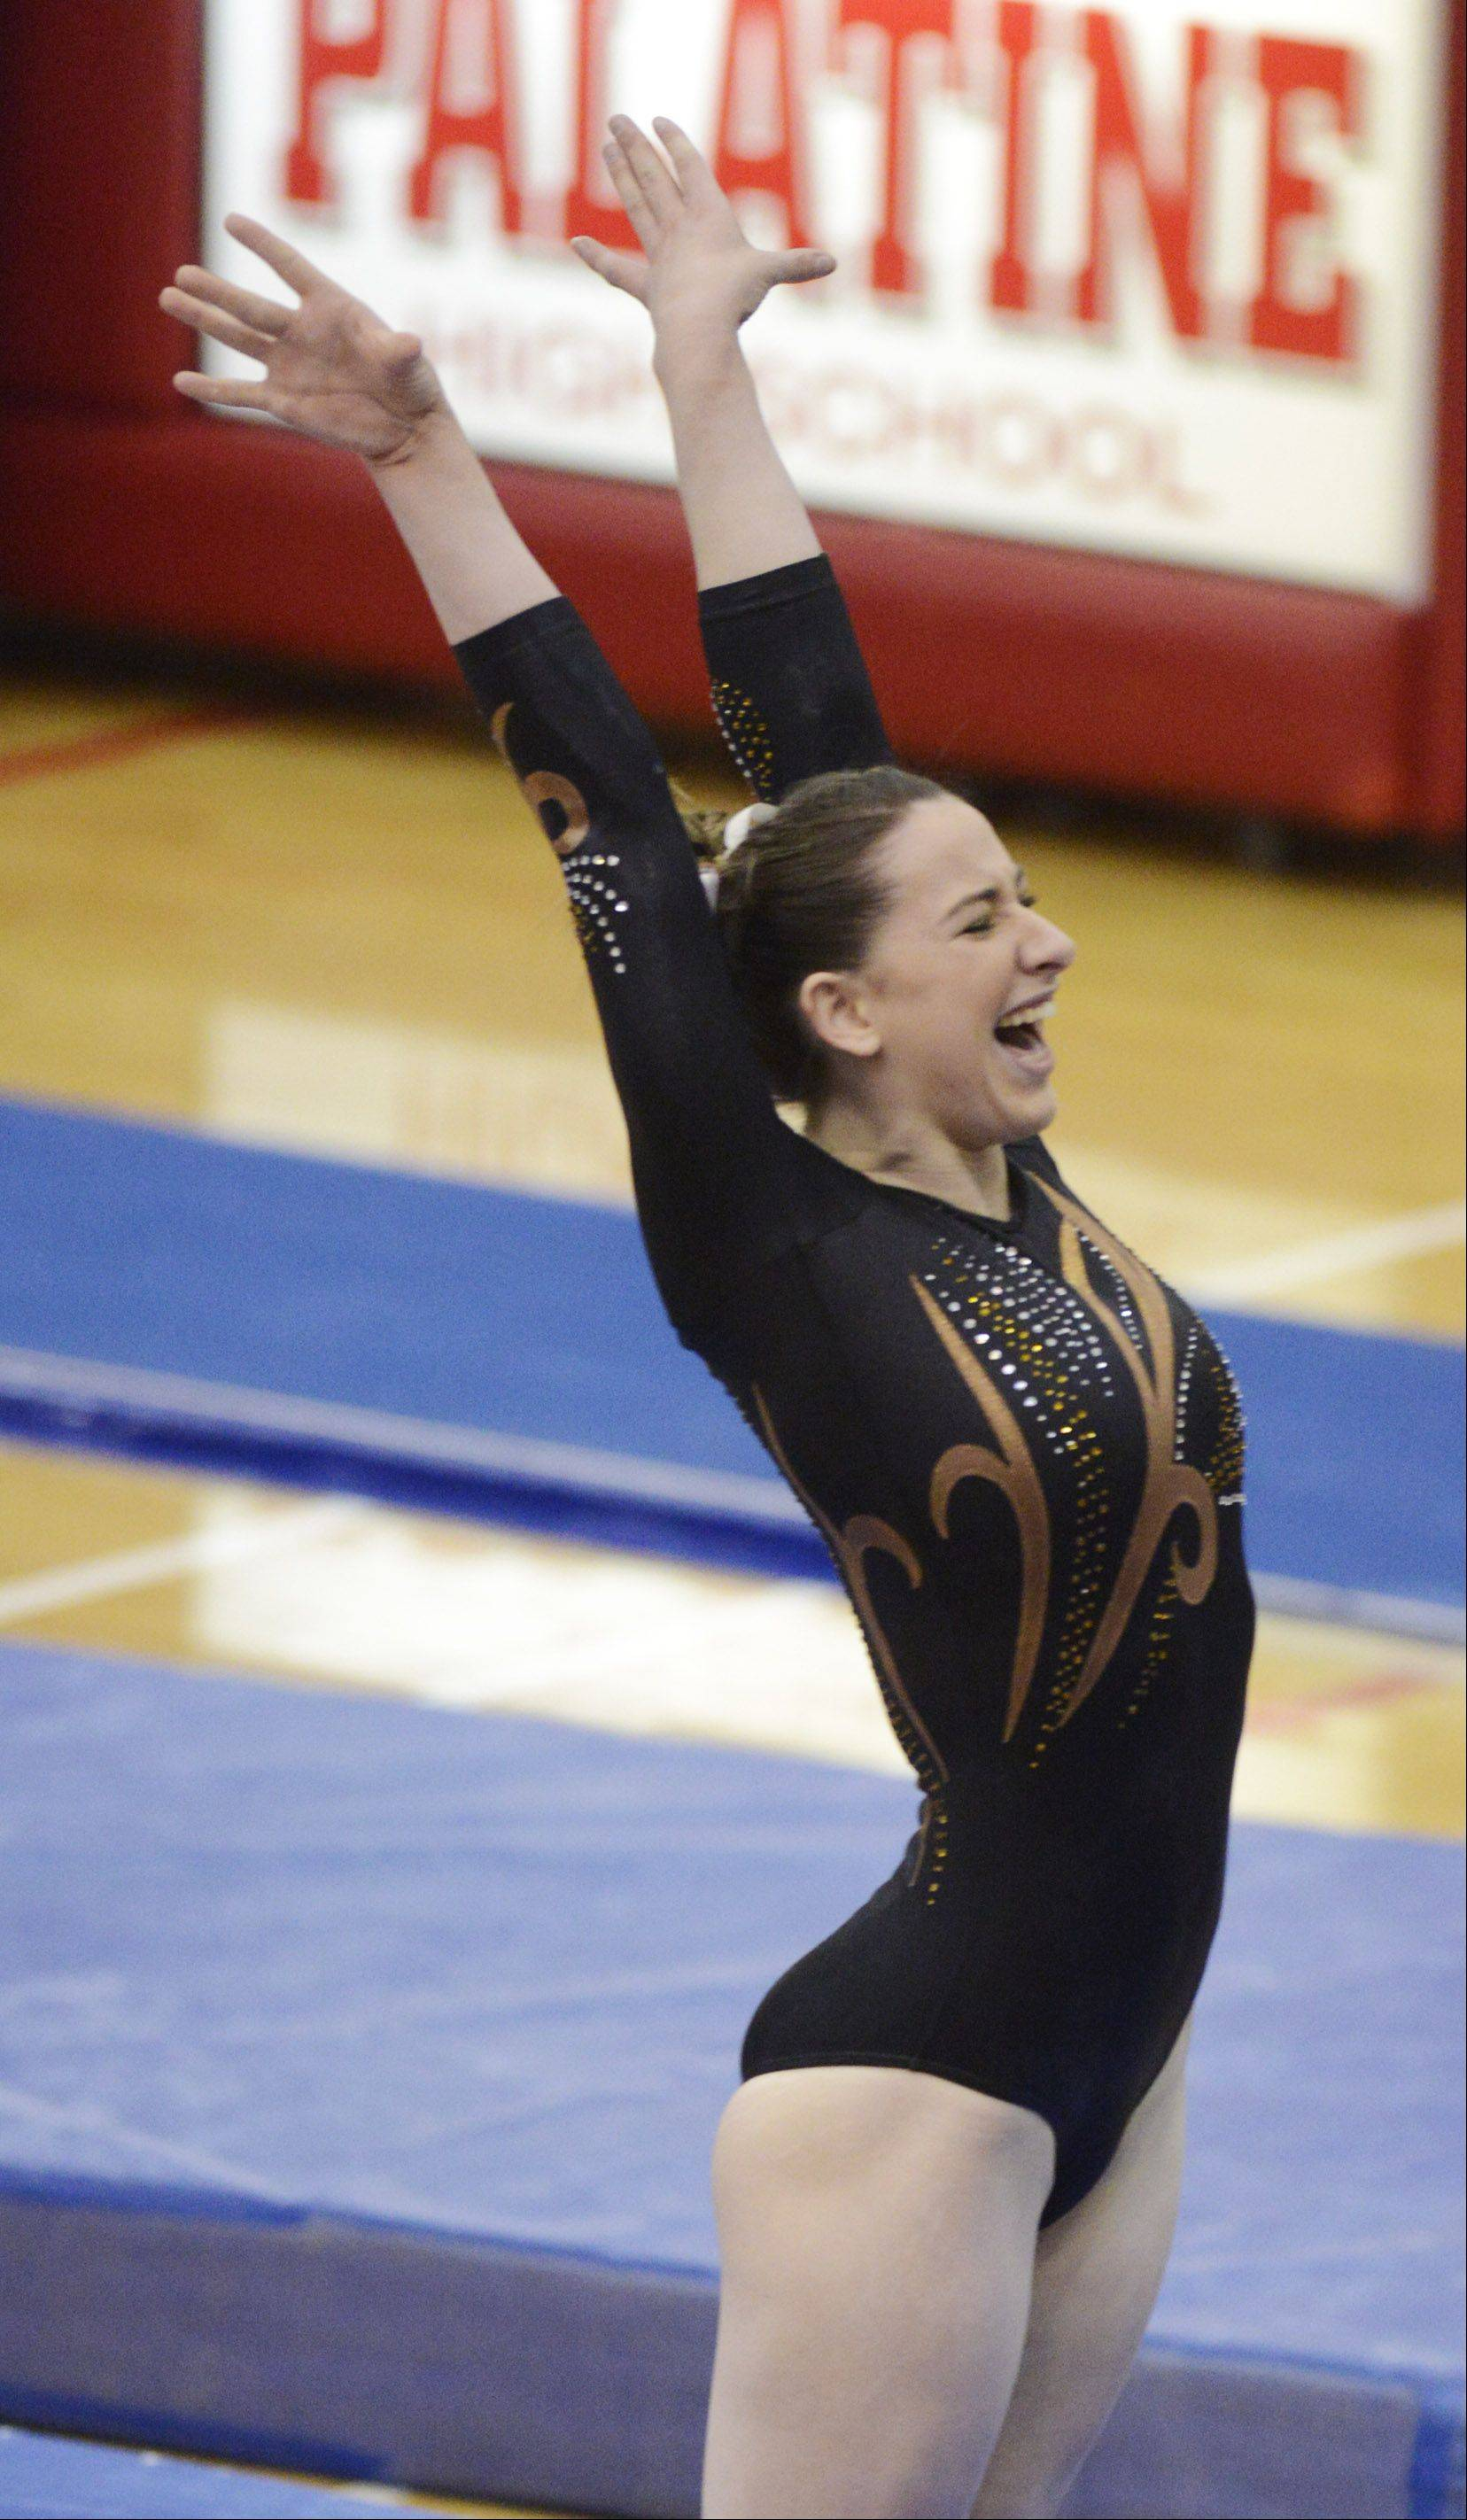 Carmel�s Lauren Feely celebrates her performance on balance beam during the girls gymnastics state meet prelims at Palatine on Friday. The Corsairs senior won the all-around and had the top efforts on floor exercise, vault and beam.